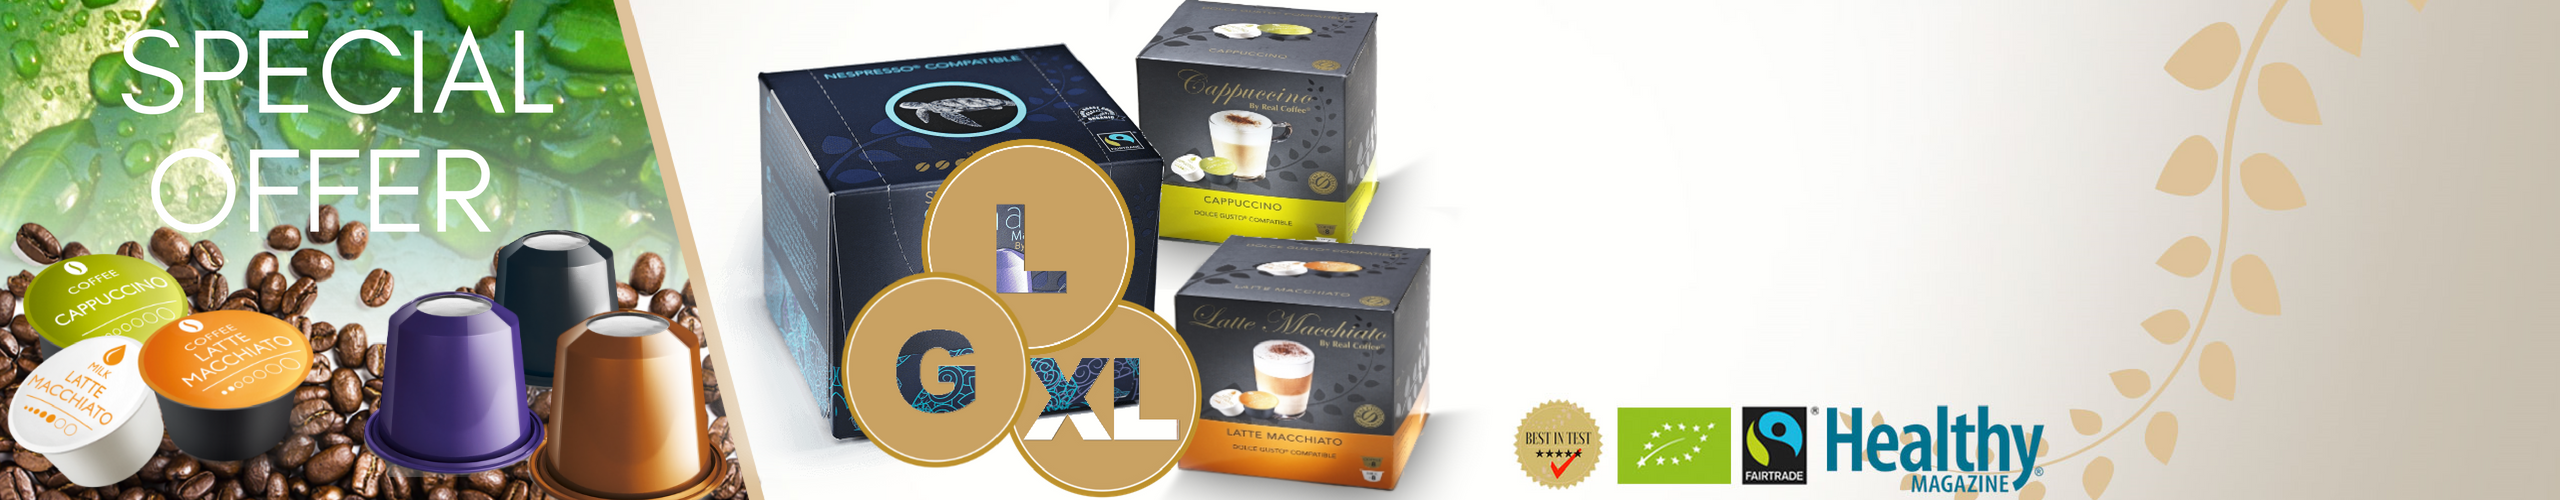 Get up to 30 FREE coffee pods when you order the Large, XL or Giga pack.